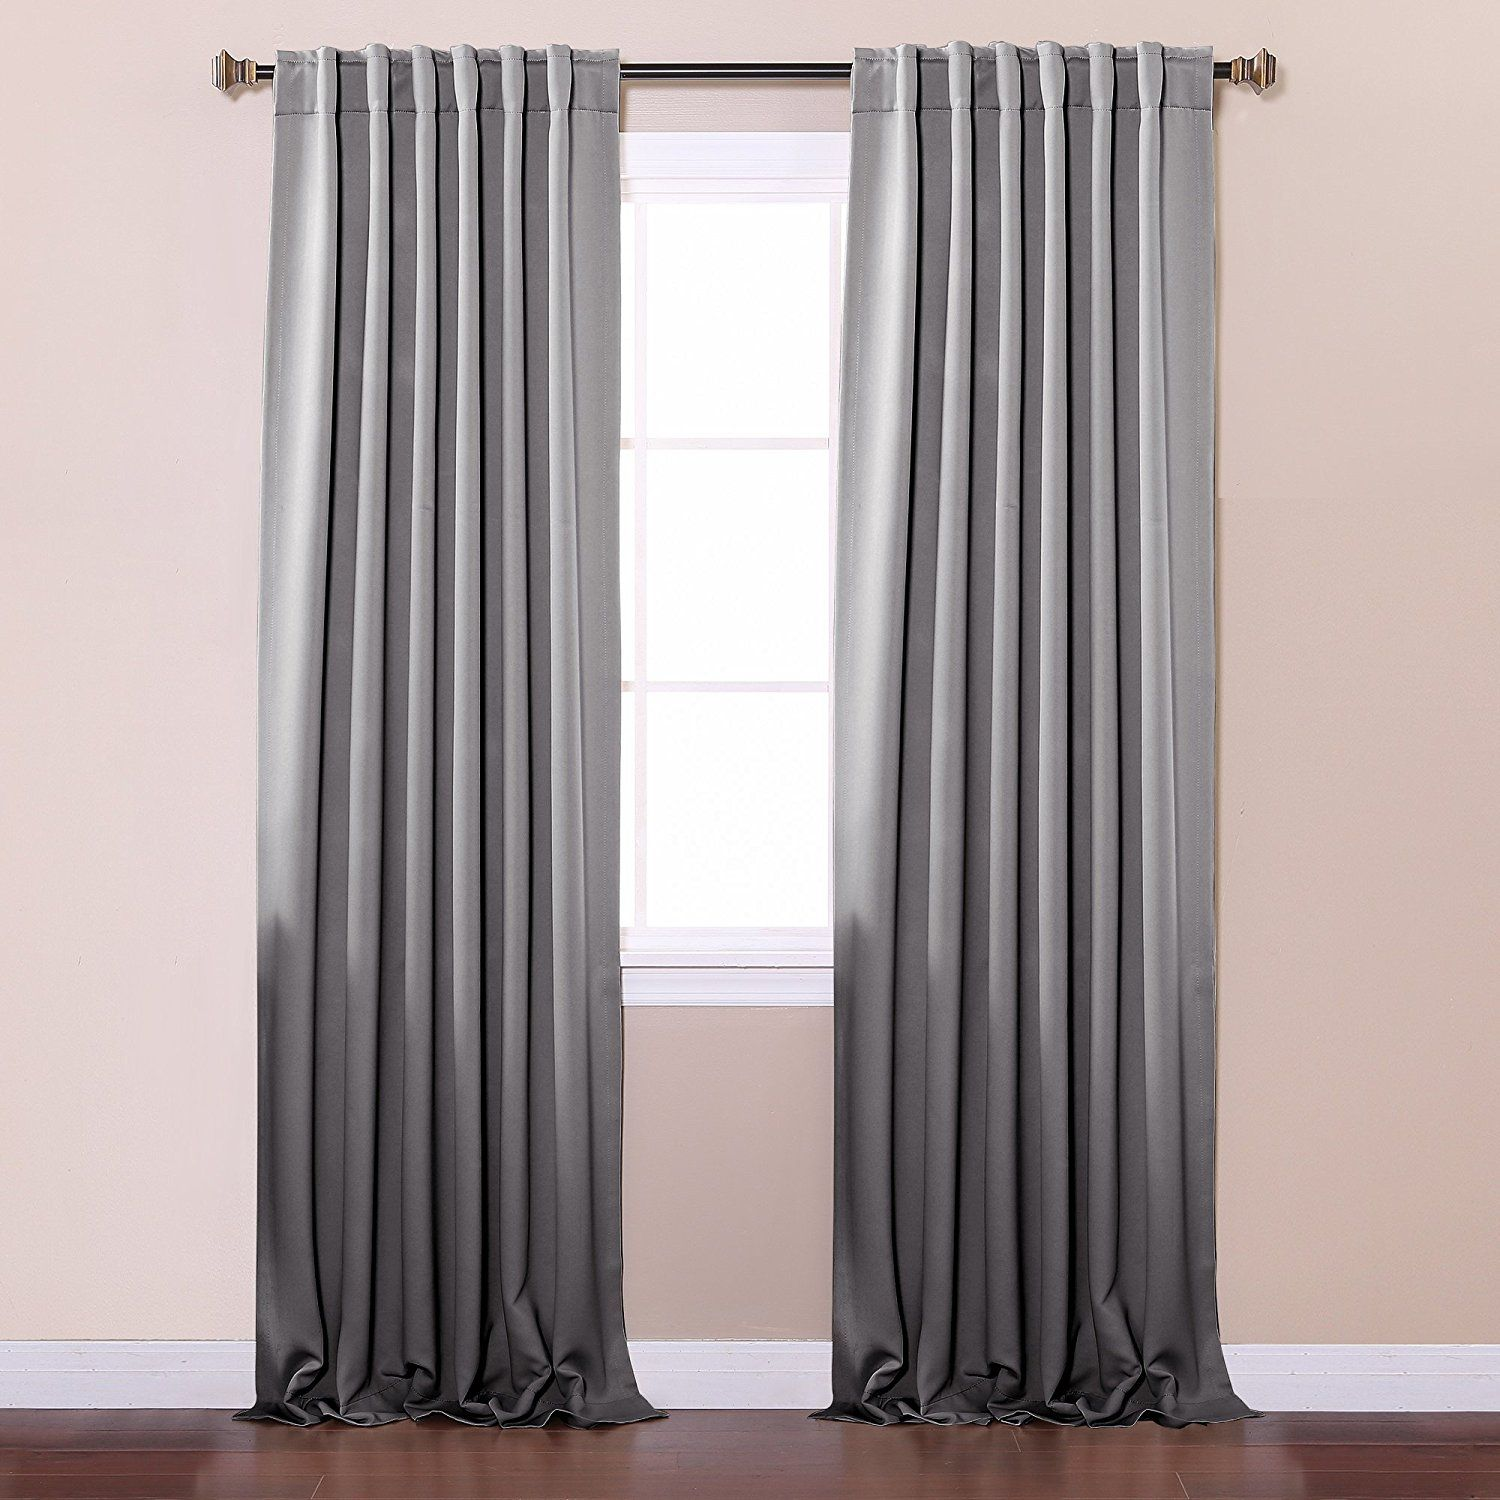 of design curtain thermal print floral top kitchen grommet faux mysky room amazon home linen luxury insulated curtains